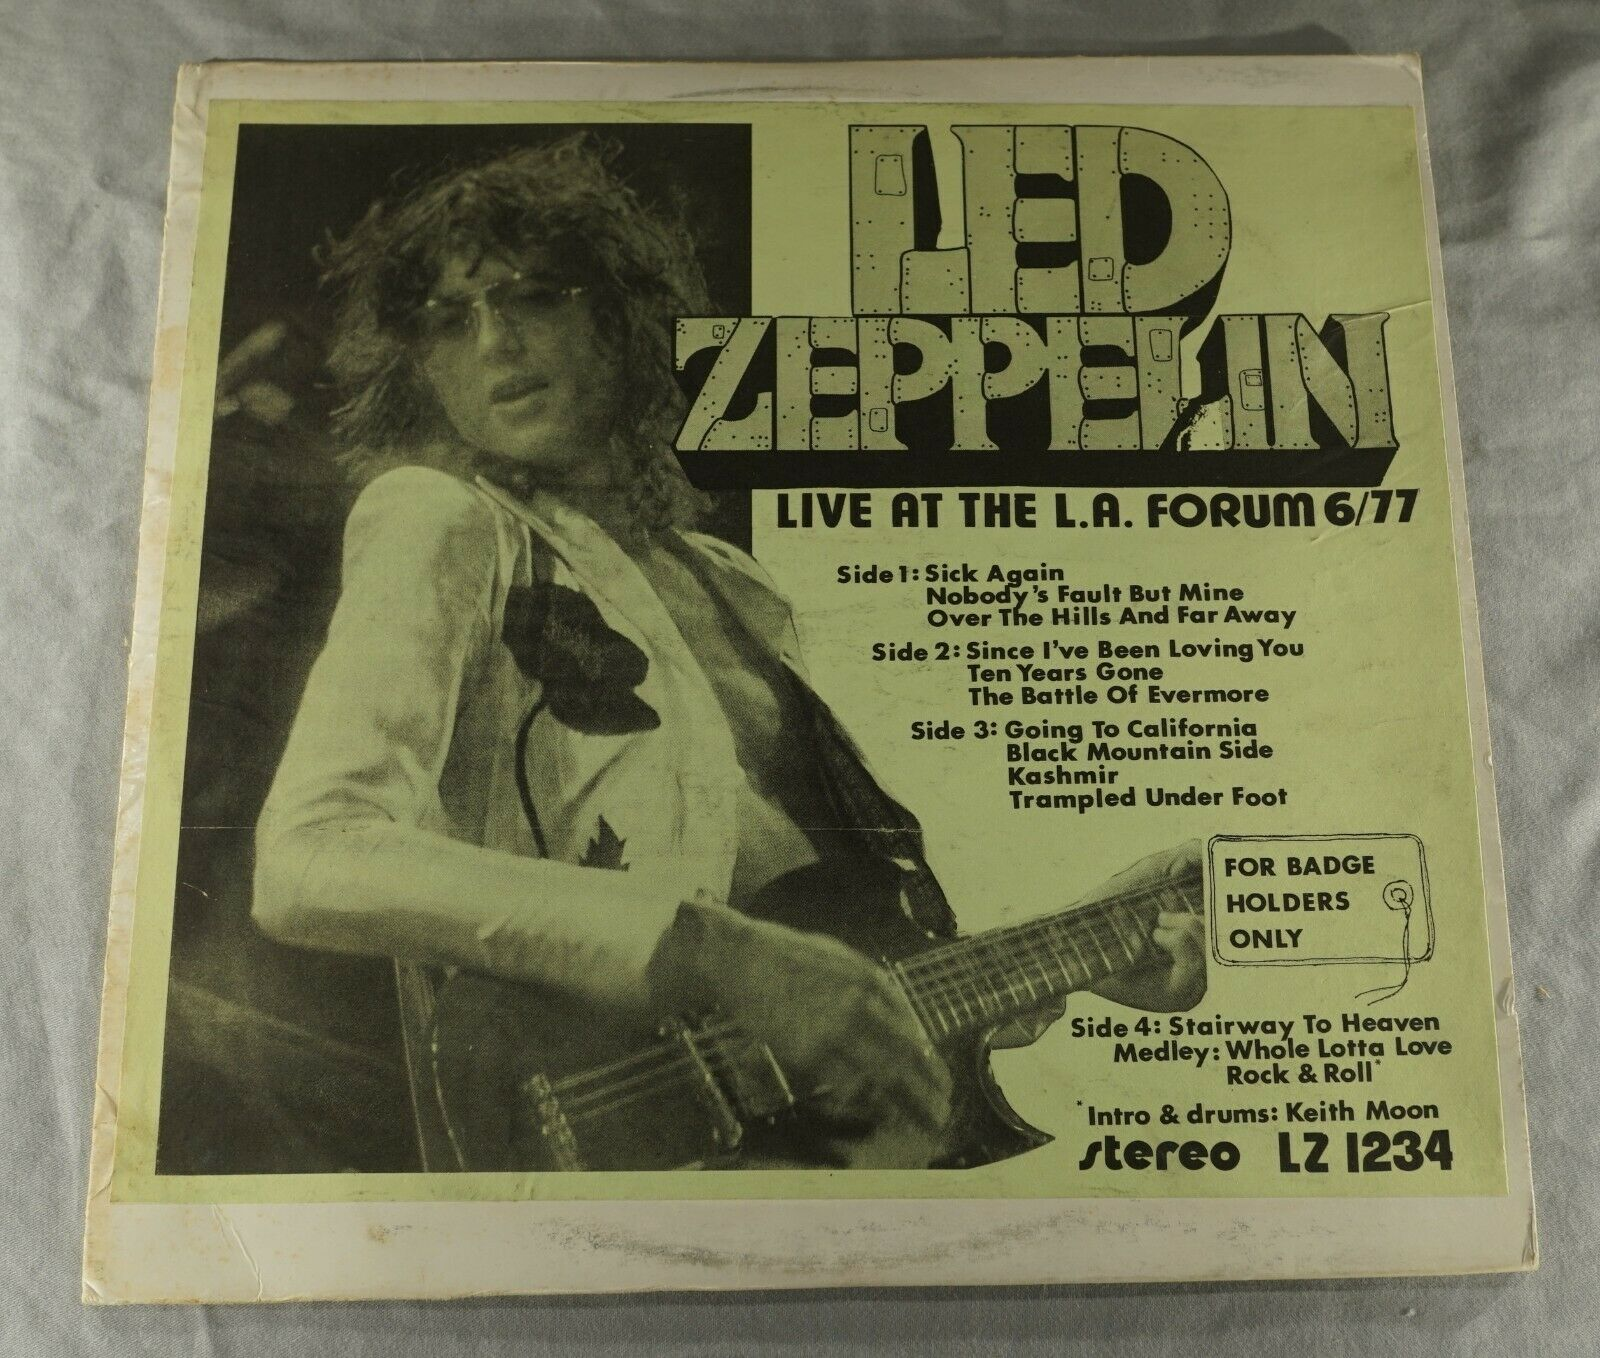 ORIGINAL LED ZEPPELIN LIVE FORUM 1977 FOR BADGE HOLDERS ONLY 33 1/3 RPM RECORD